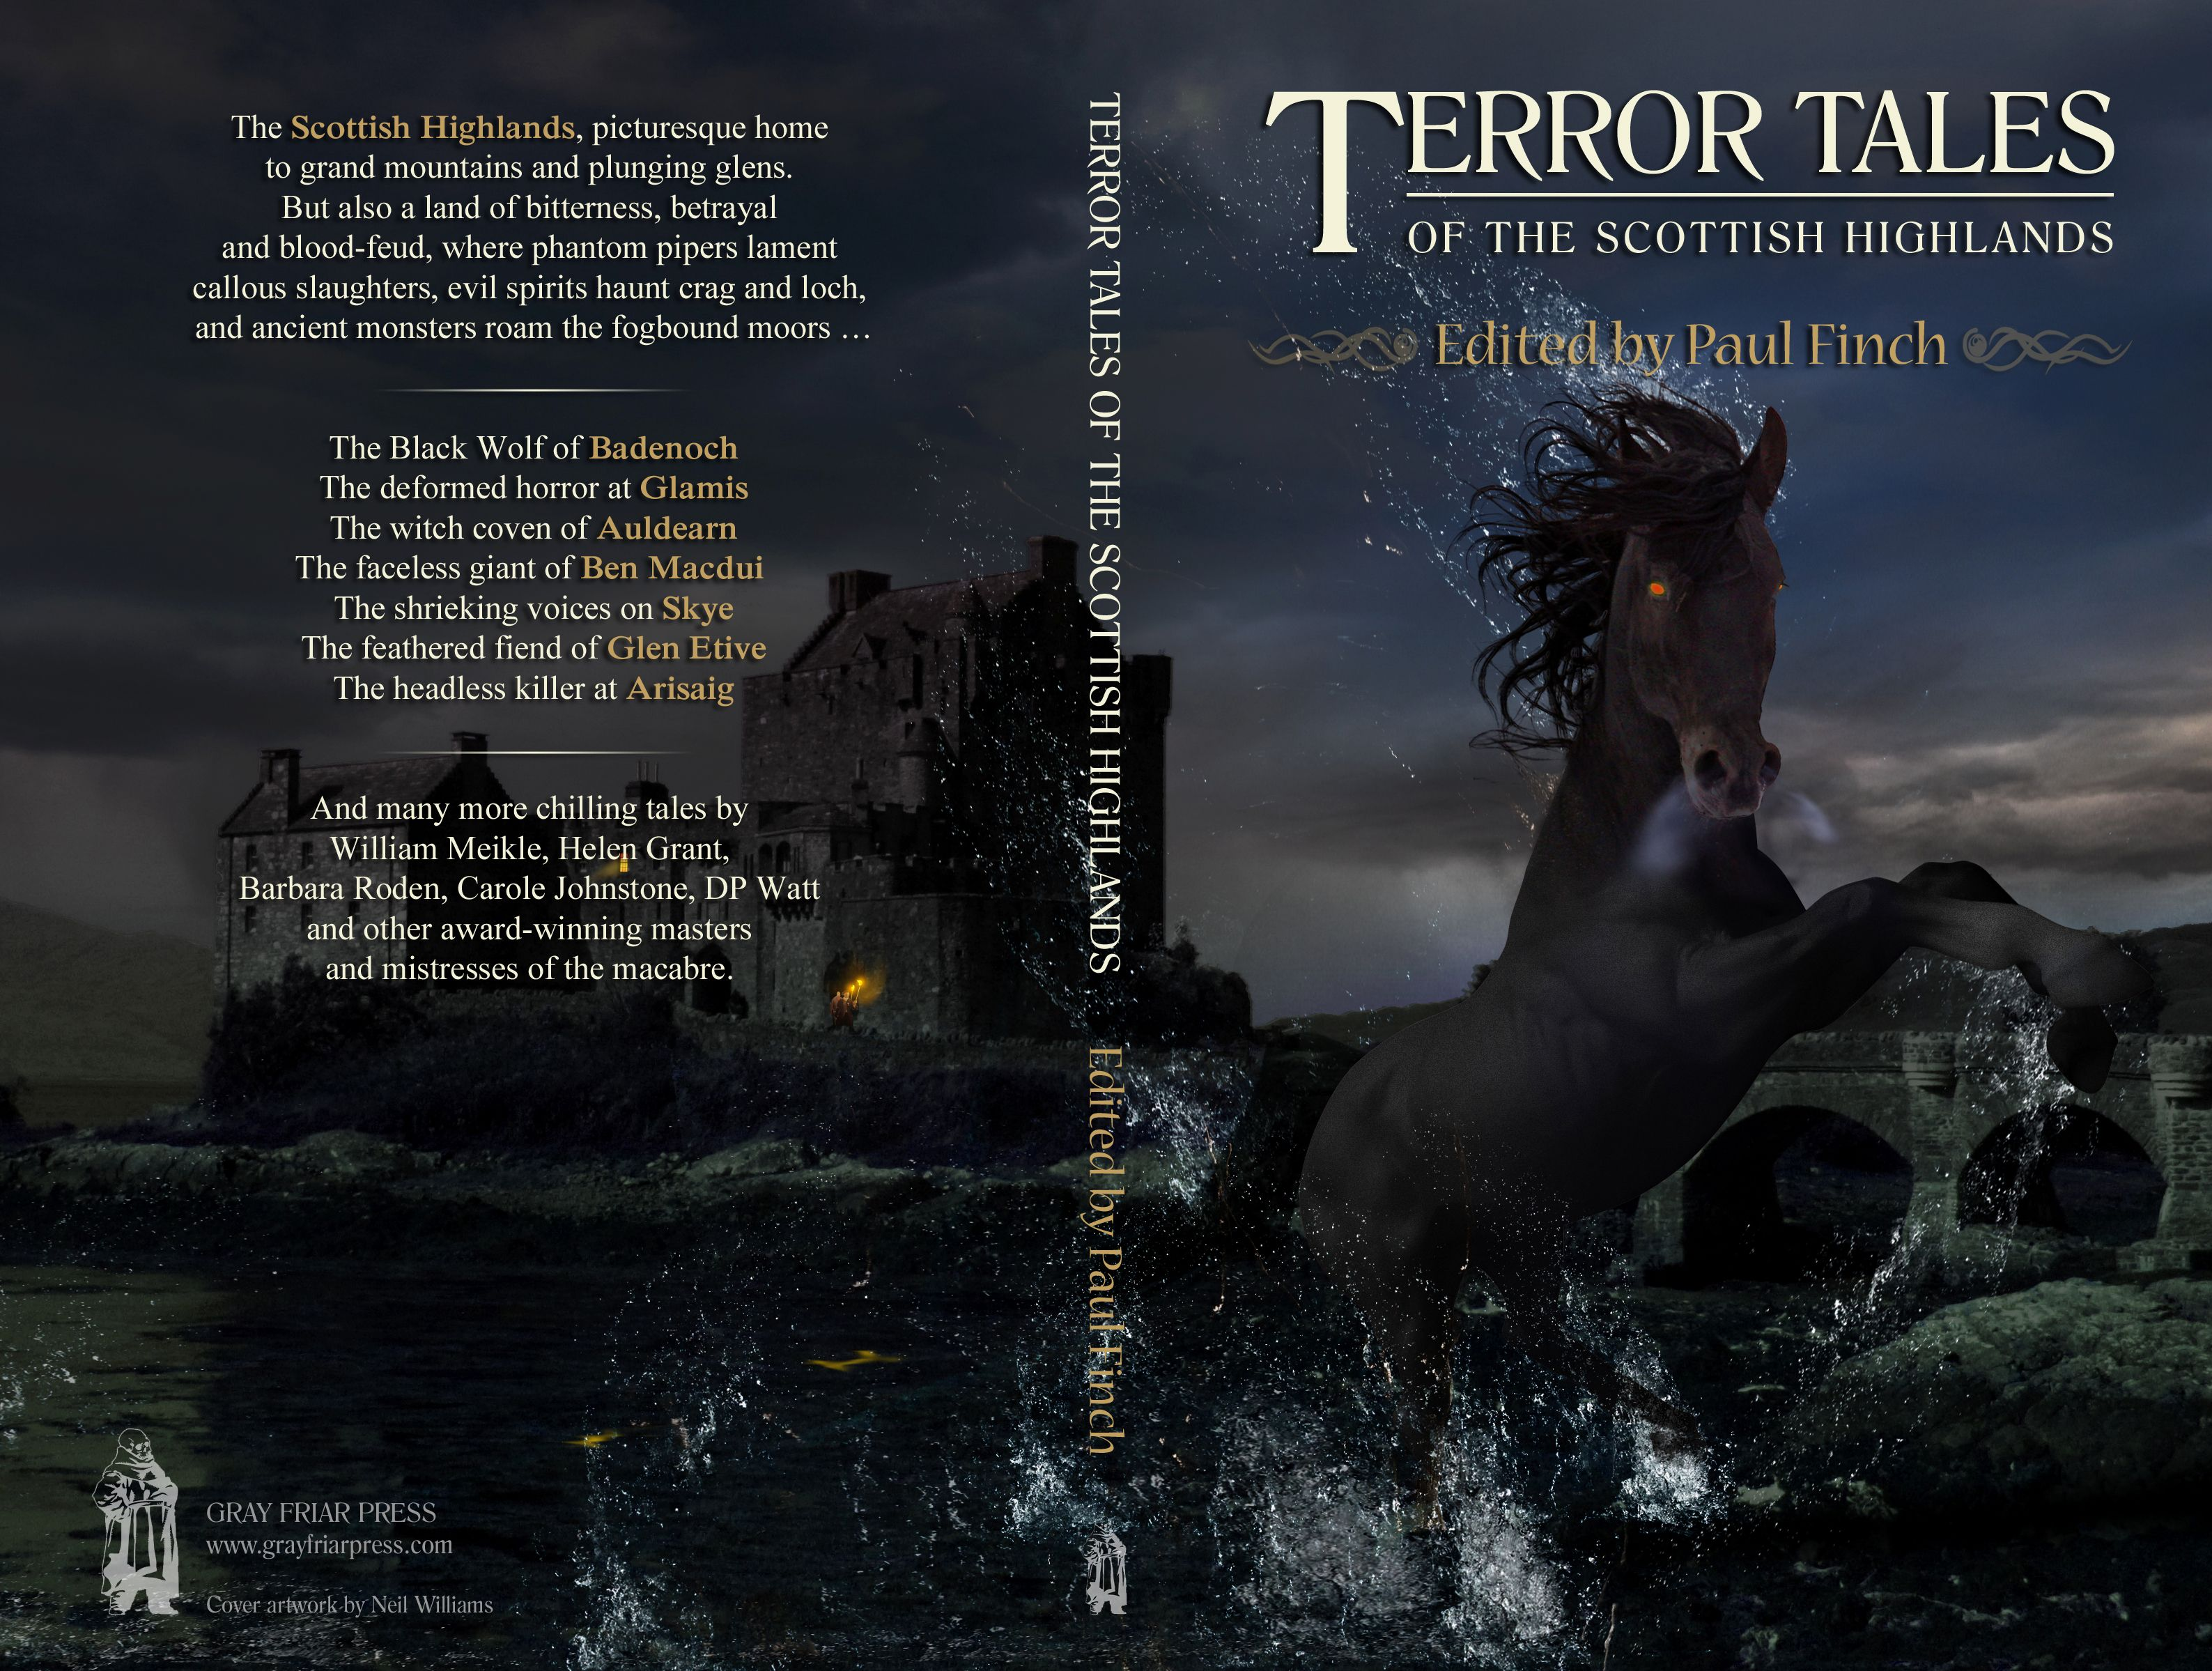 Terror tales of the Scottish Highlands - final full cover